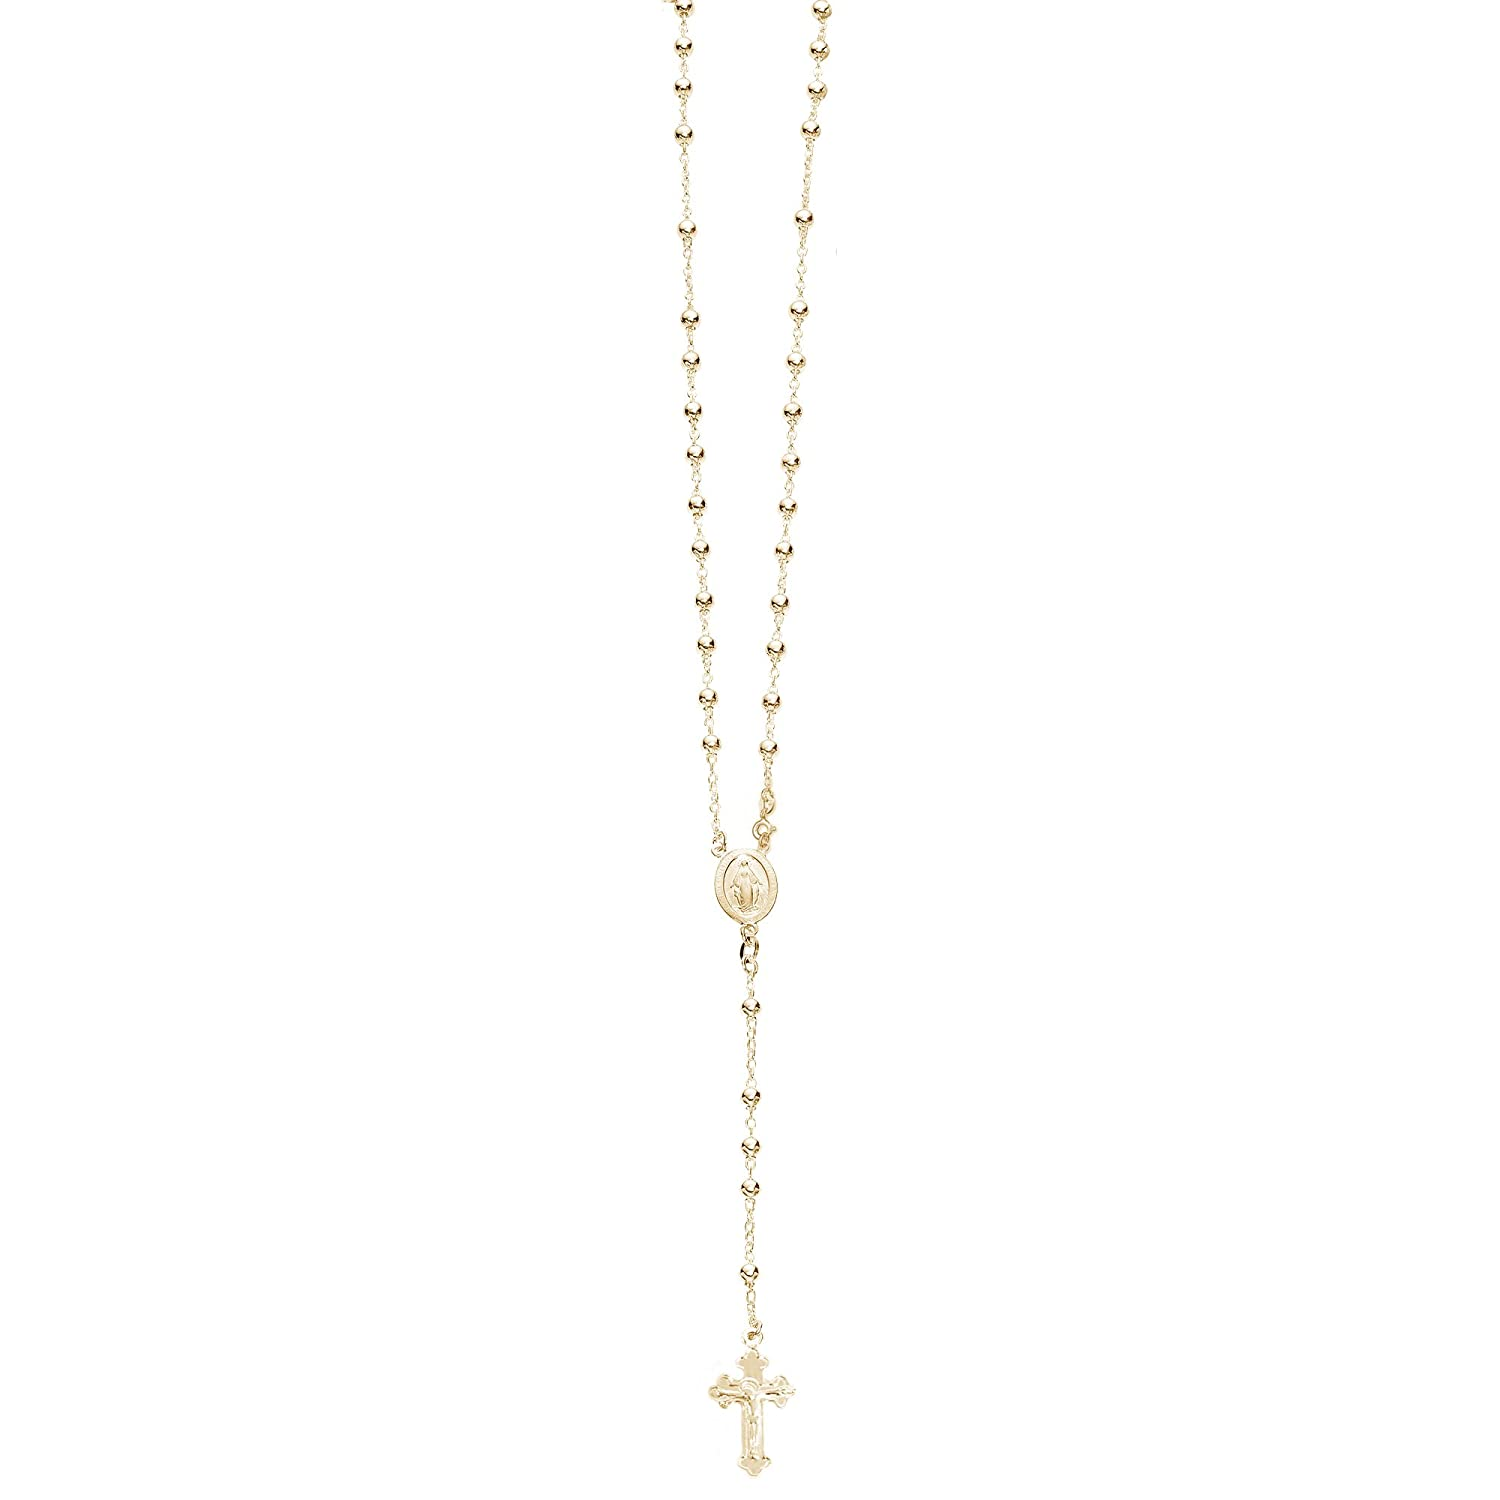 2d52d1b473f61 Ritastephens Sterling Silver or Gold-tone 3mm Rosary Bead Necklace Virgin  Mary Cross Made in Italy